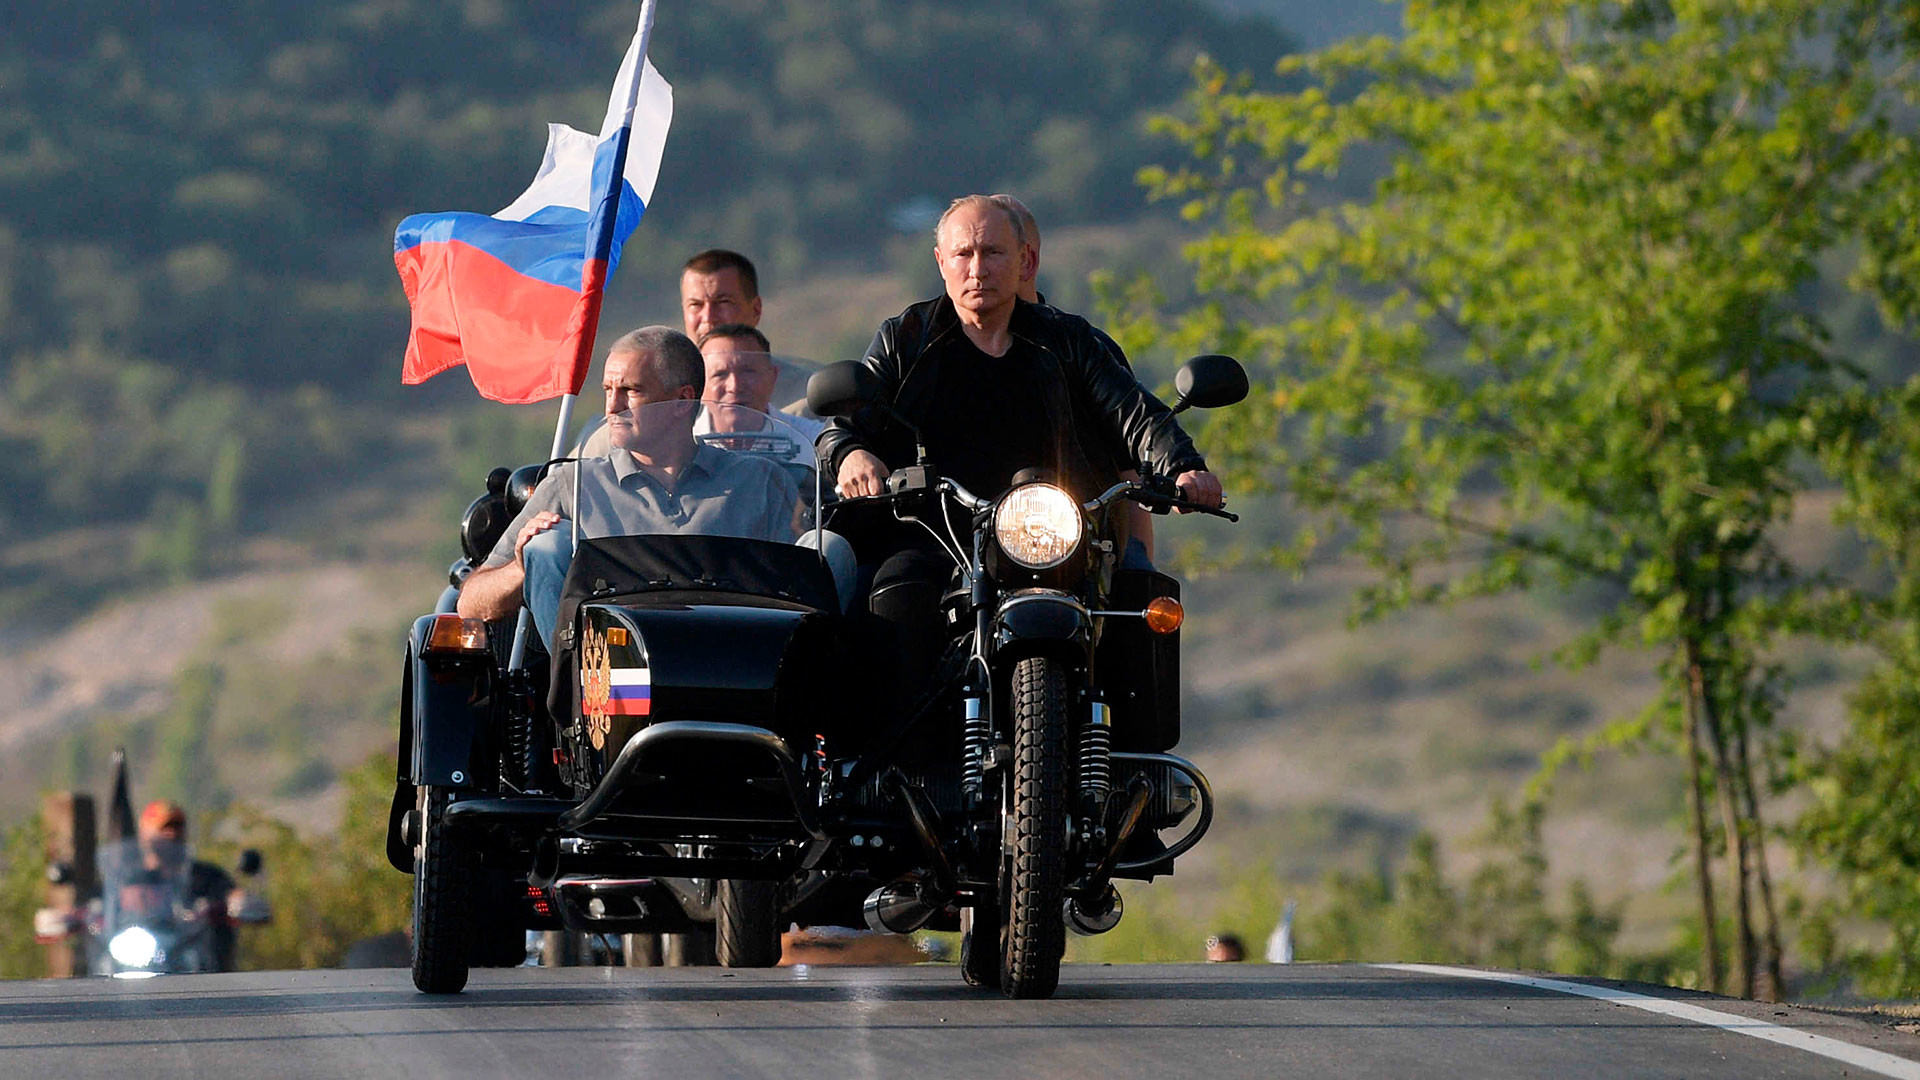 """August 10, 2019. Russian President Vladimir Putin participates in the international bike show in Sevastopol at the wheel of a motorcycle"""" Ural """" with a sidecar. On the left - the Head of the Republic of Crimea, Chairman of the Council of Ministers of the Republic of Kazakhstan Sergey Aksenov"""